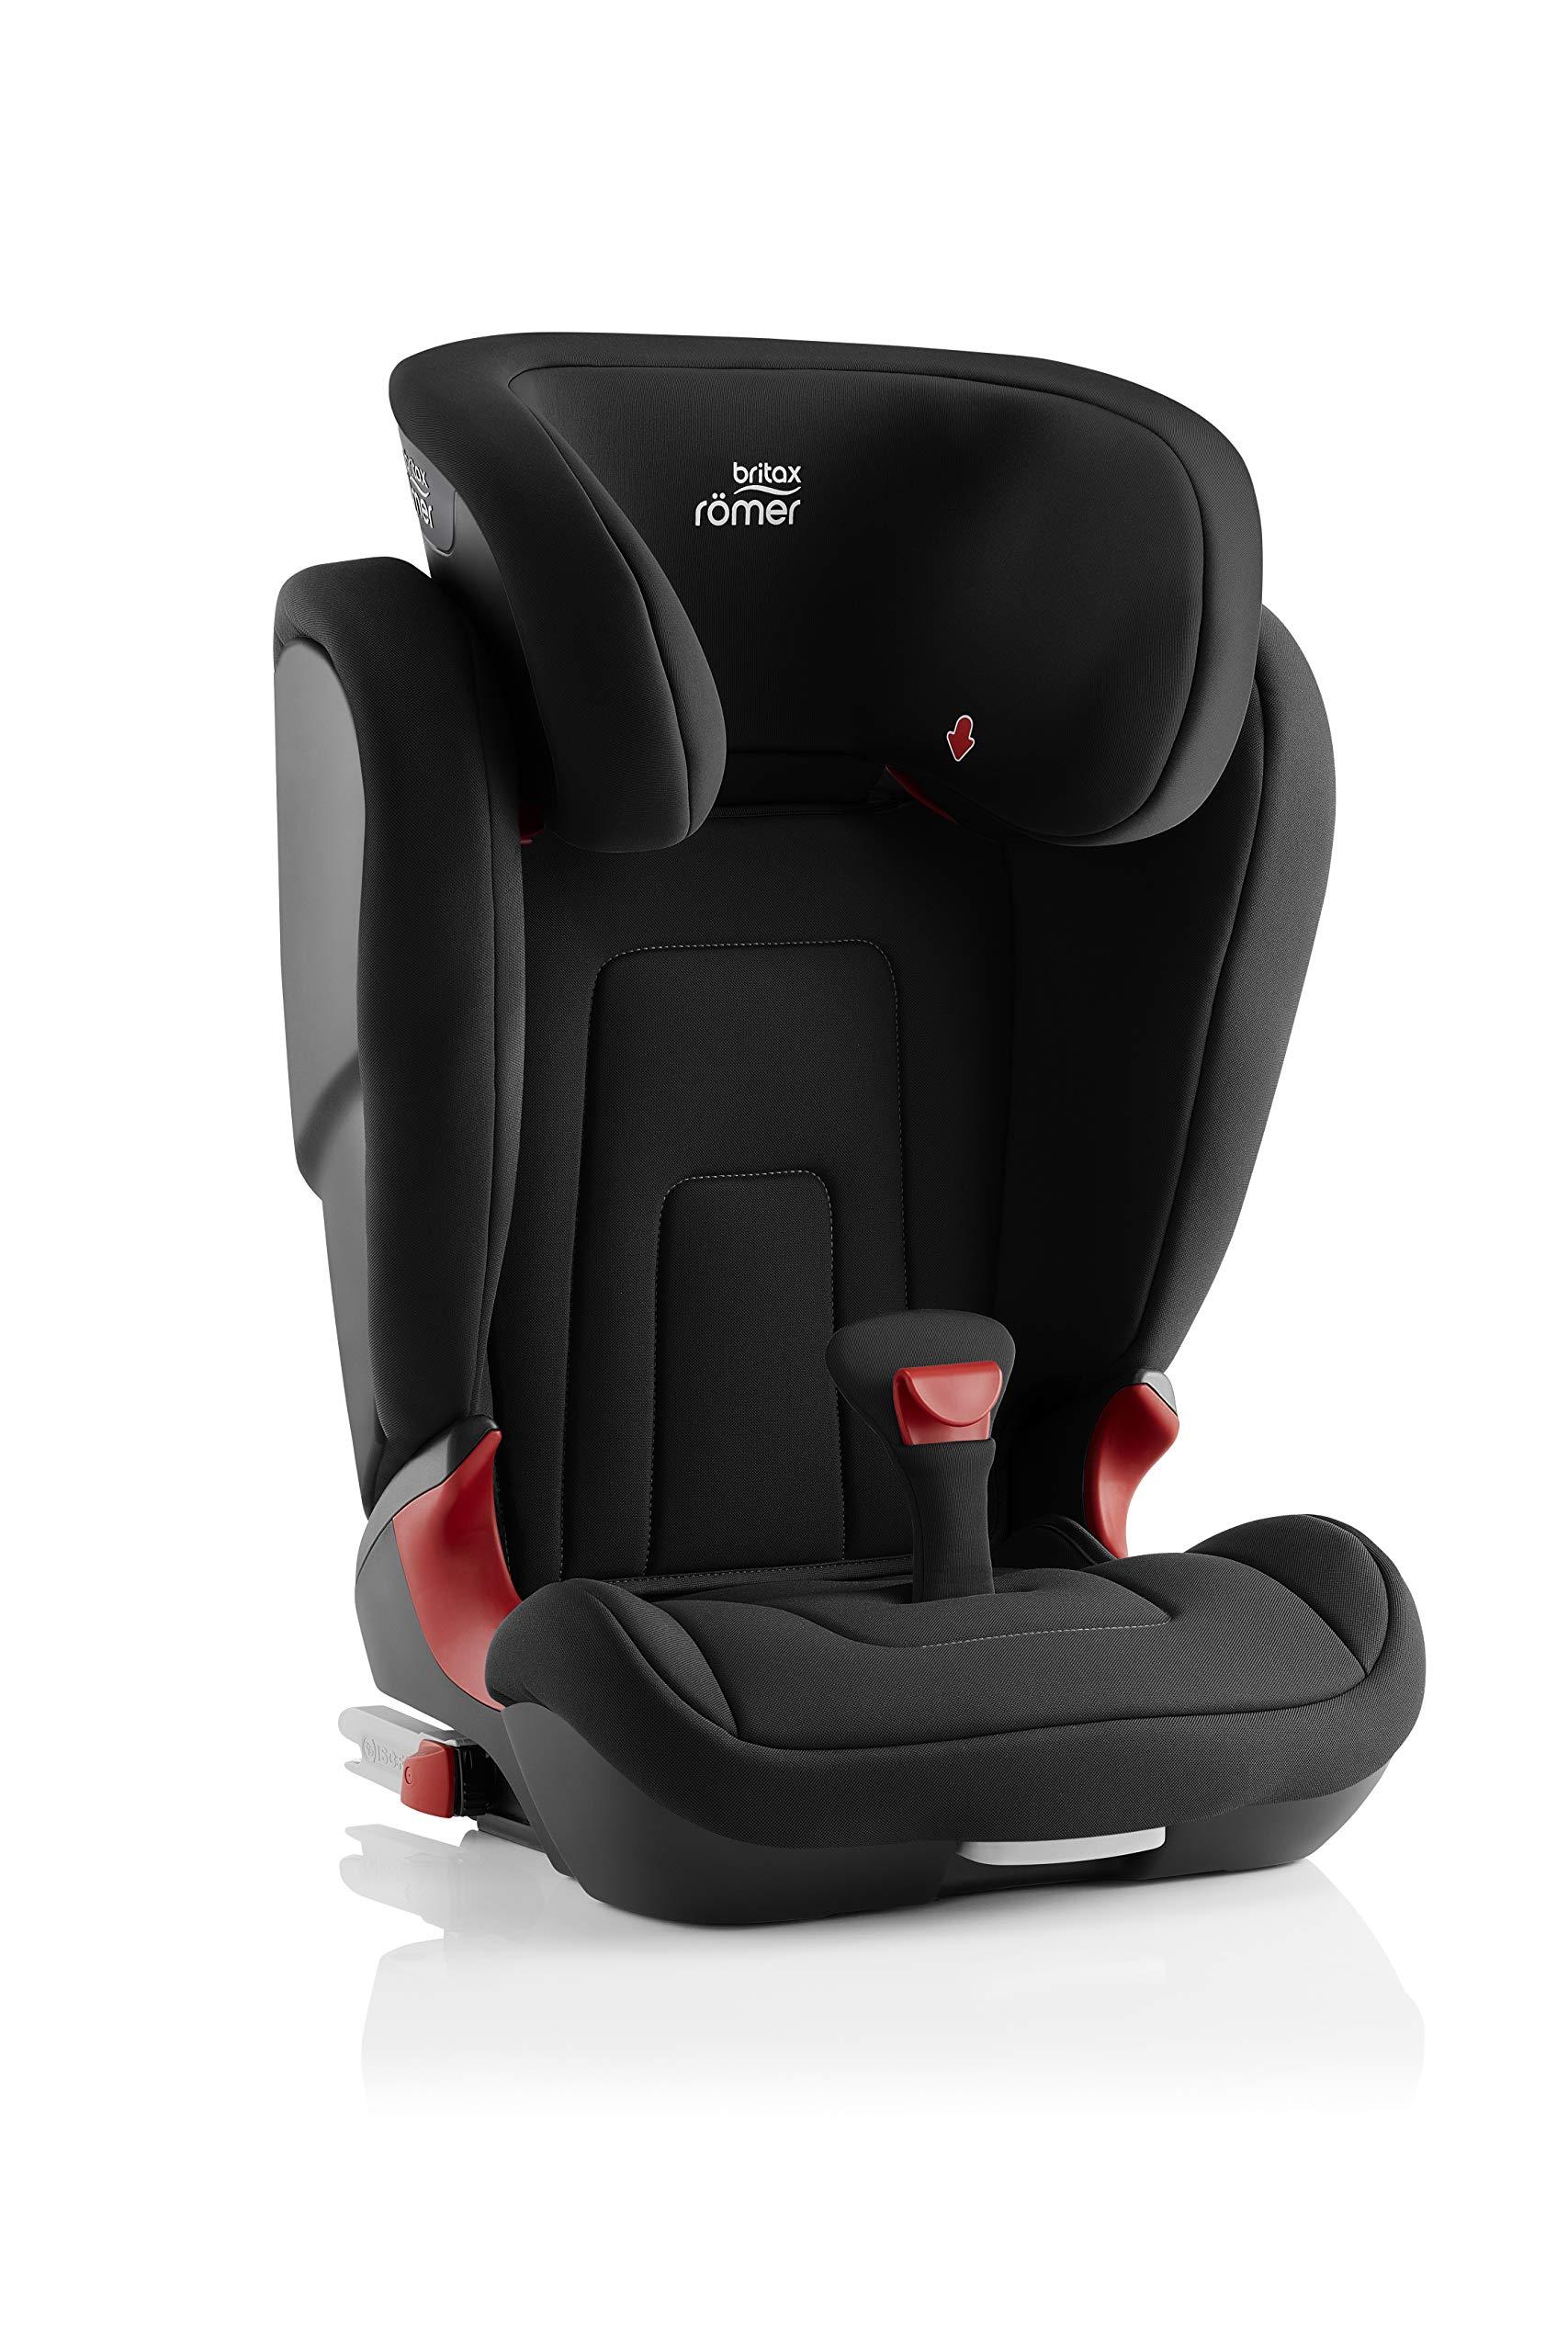 Britax Römer car seat 15-36 kg, KIDFIX 2 R Isofix group 2/3, Cosmos Black Britax Römer Secure guard - helps to protect your child's delicate abdominal area by adding an extra - a 4th - contact point to the 3-point seat belt. High back booster - protects your child in 3 ways: provides head to hip protection; belt guides provide correct positioning of the seat belt and the padded headrest provides safety and comfort. Easy adjustable v-shaped backrest - designed to give optimum support to your growing child, the v-shaped backrest provides more space for their back and shoulders. 3